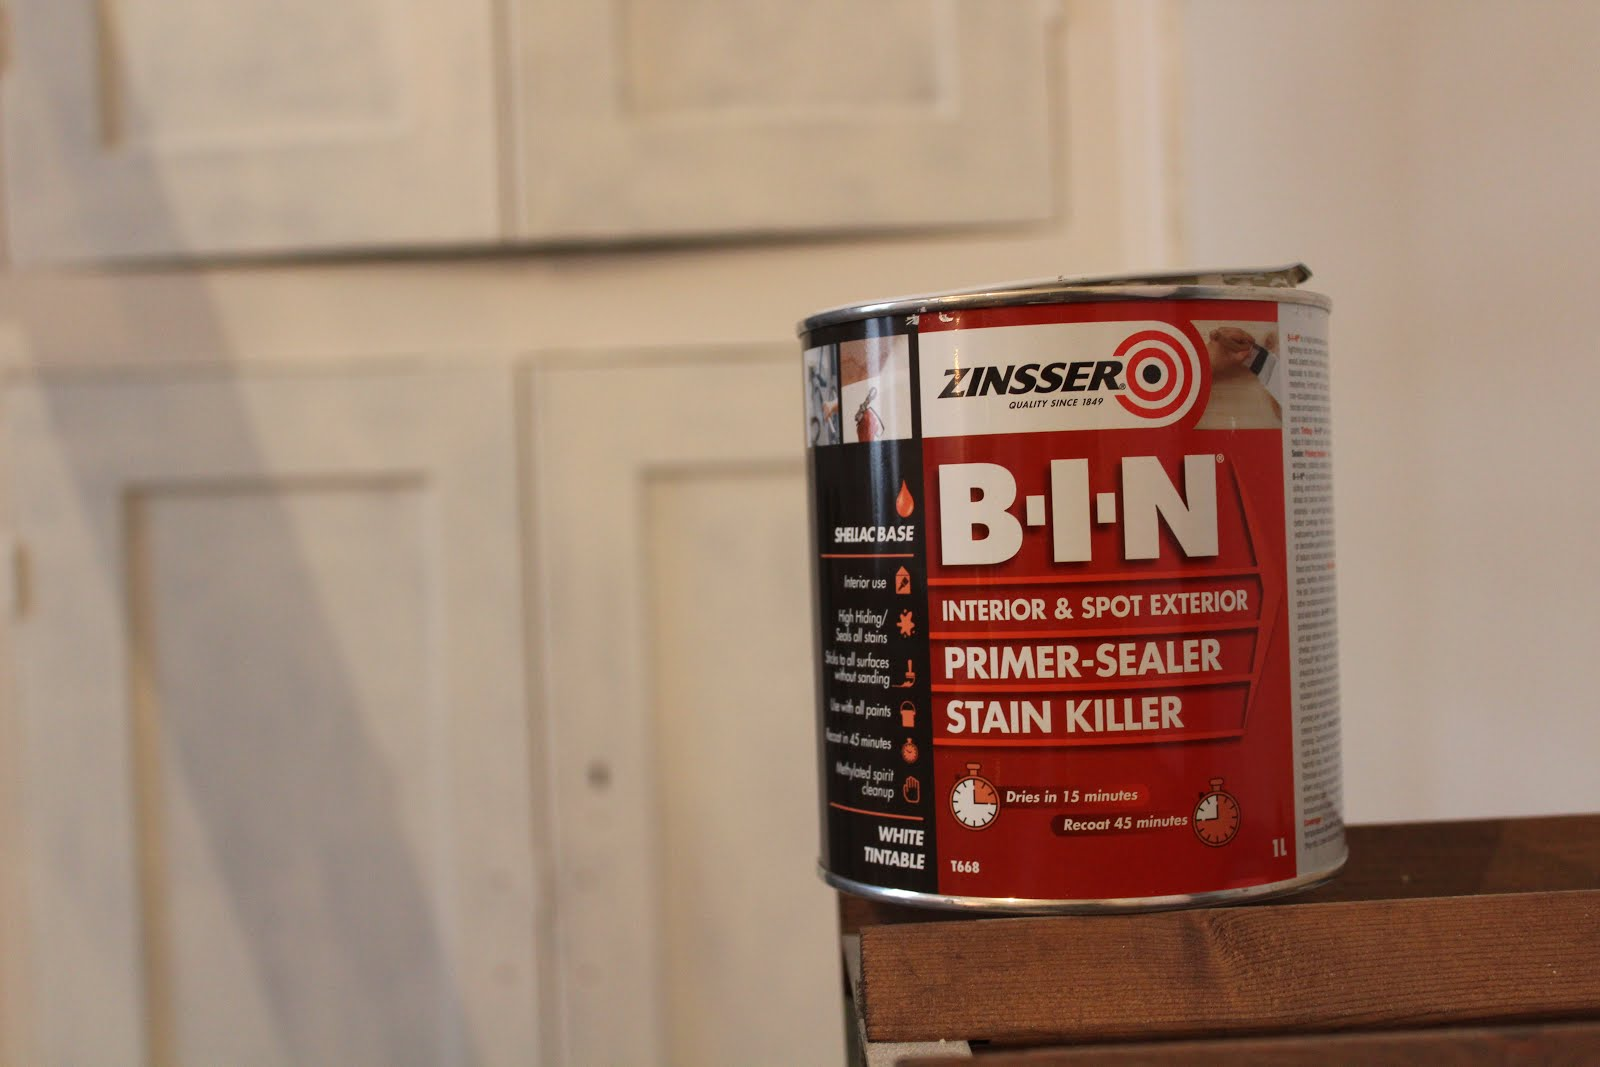 Zinsser bin primer review